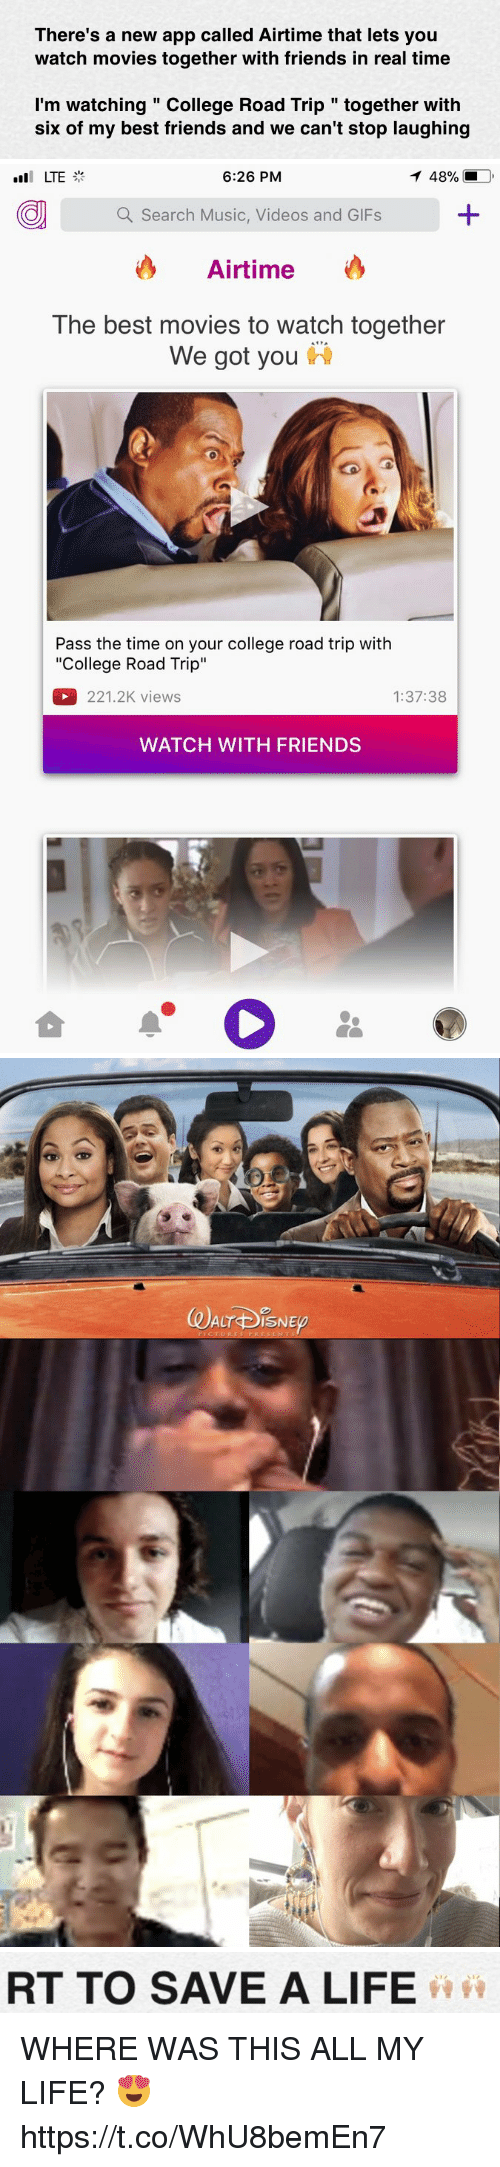 app that you can watch movies with friends